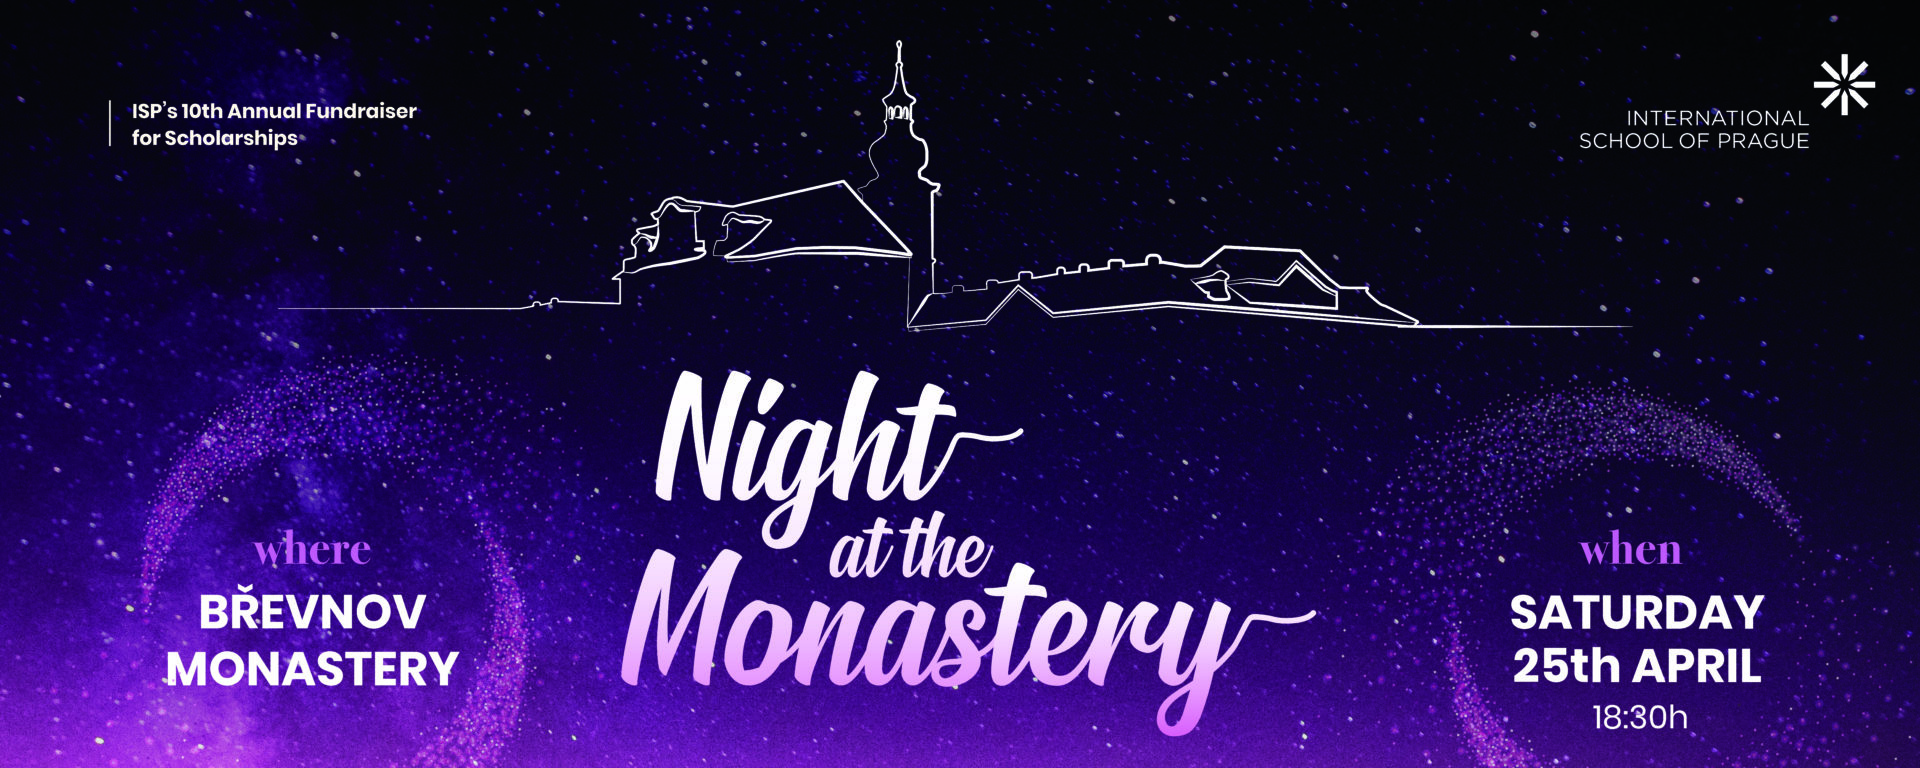 NIGHT-AT-THE-MONASTERY